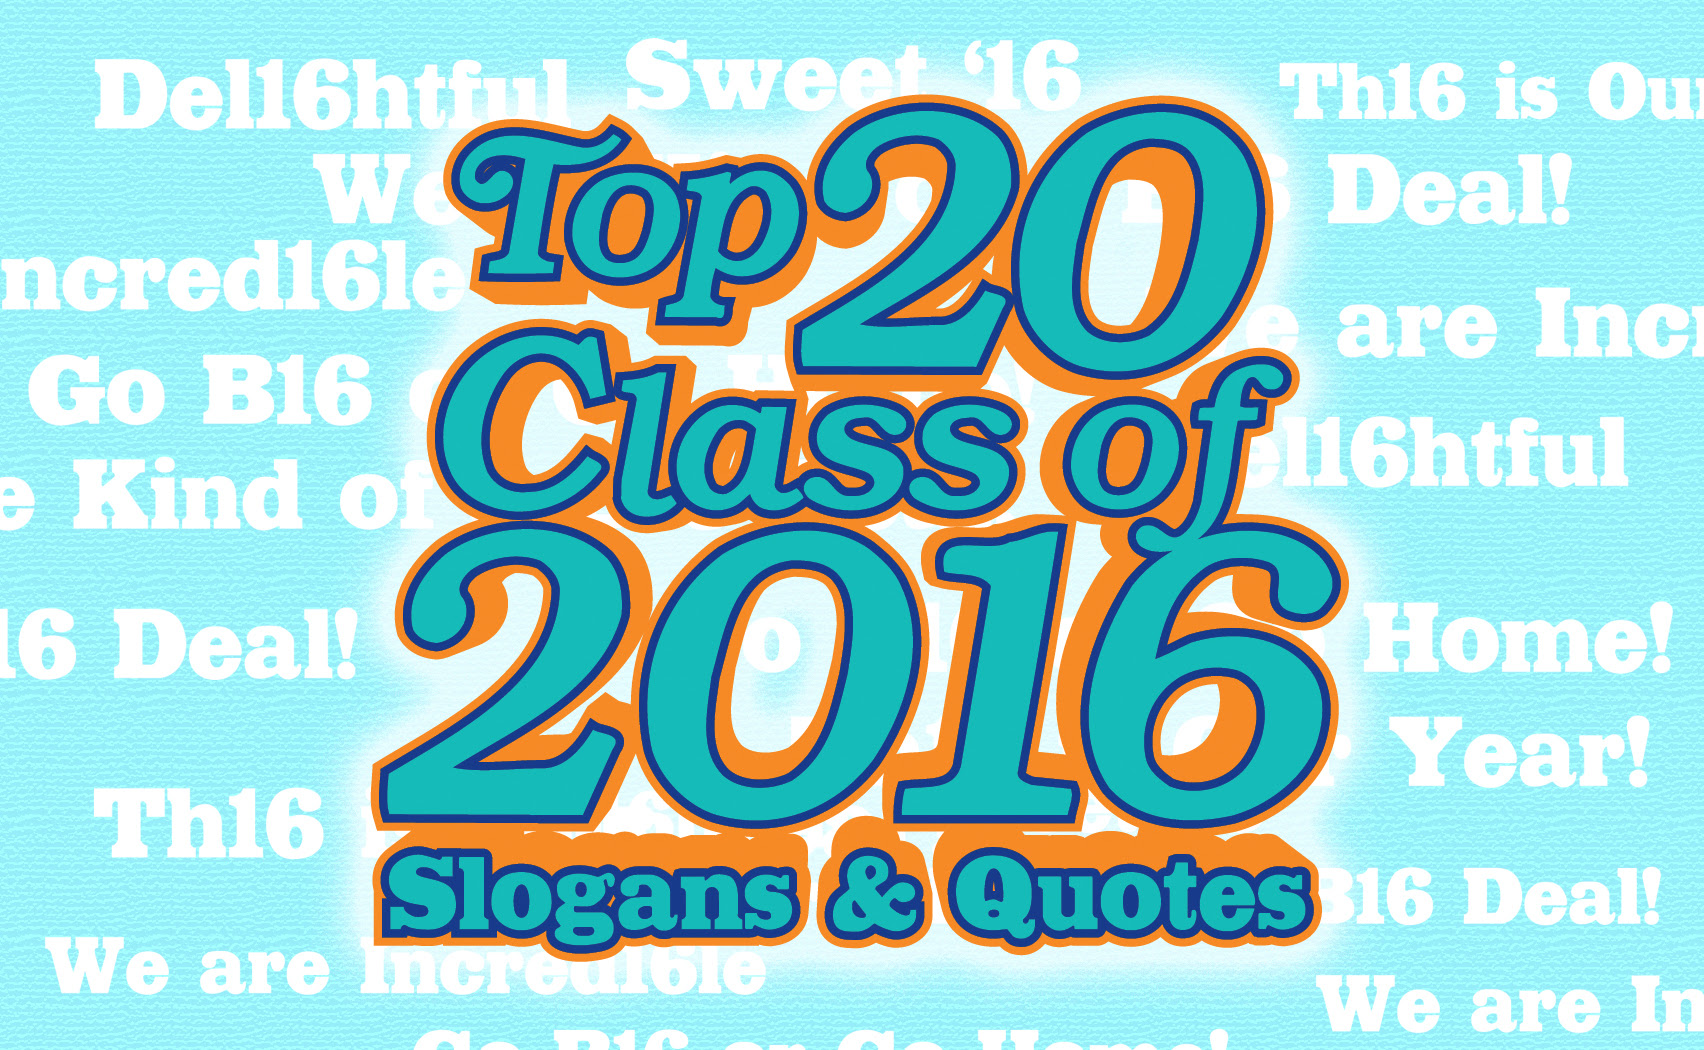 Iza Design Blogtop 20 Class Of 2016 Slogans And Quotes